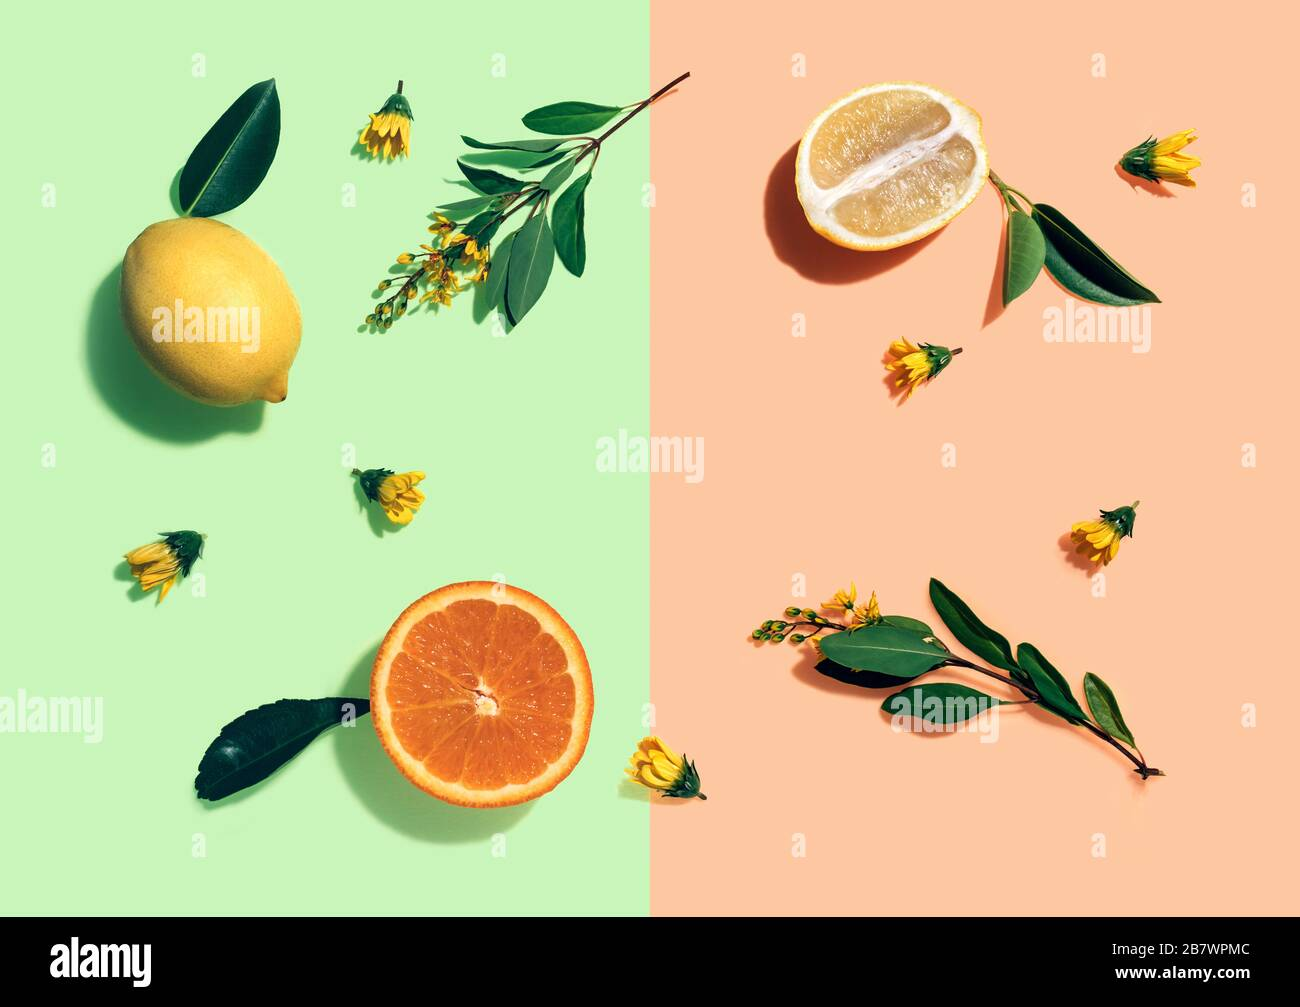 Lemon And Orange Whole And Cut Out Pieces And Yellow Flowers Pattern On Mint Green And Coral Background Flat Lay Top View Vitamin C Fruit Immunity Natural Health Concept Stock Photo